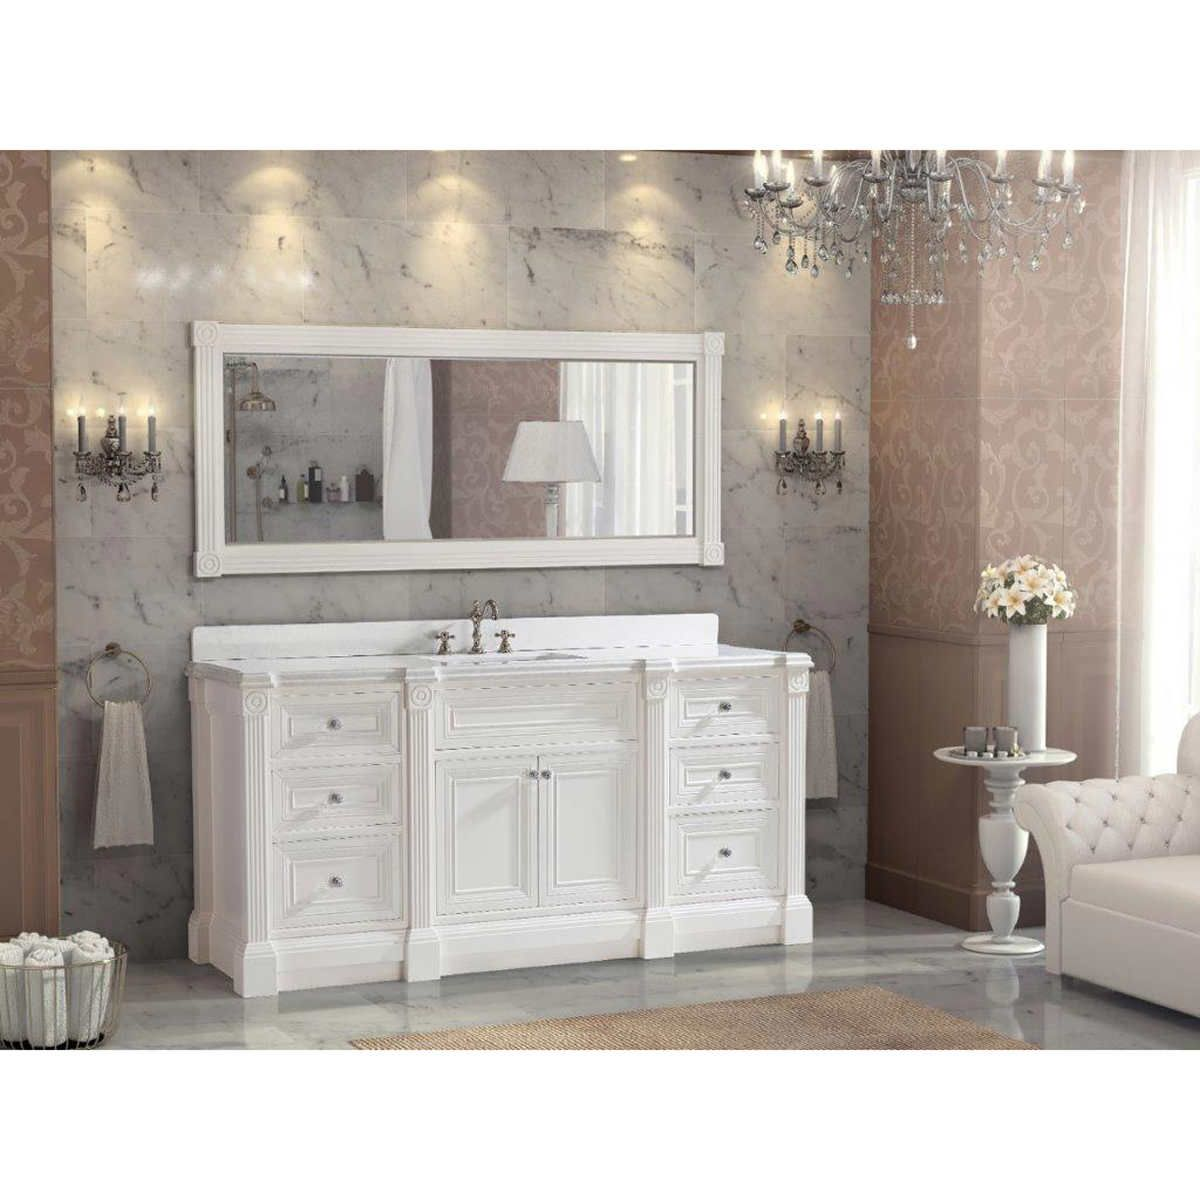 72 inch White Finish Single Sink Bathroom Vanity Cabinet ...